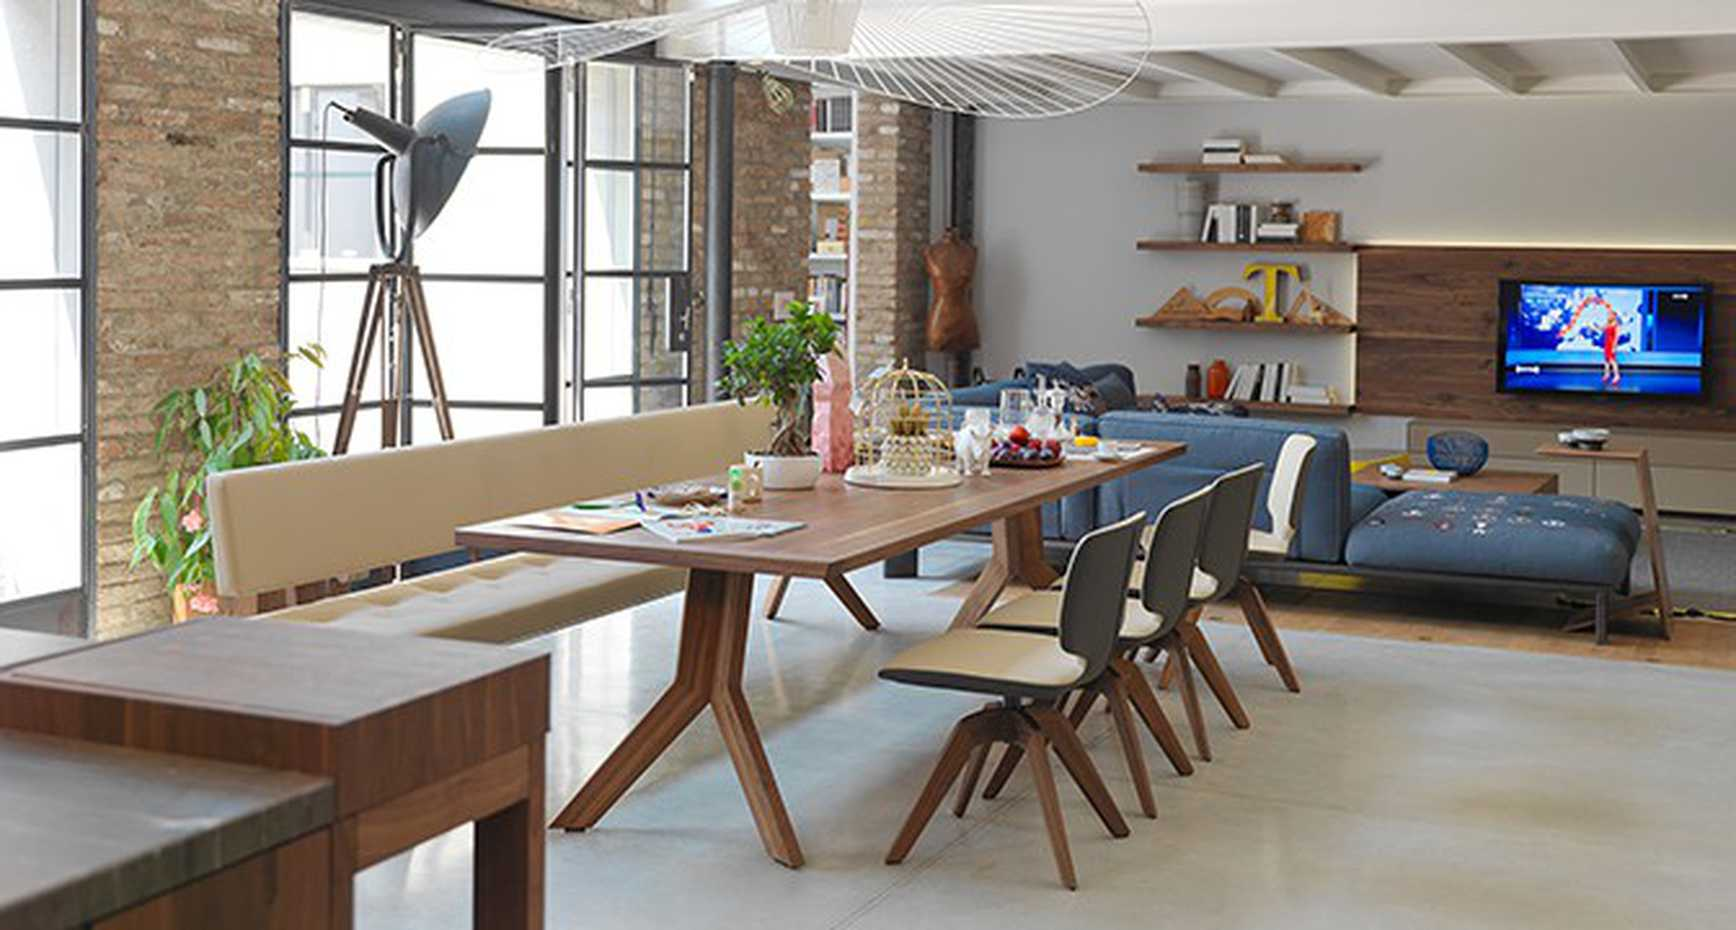 Yps Table  by Team 7 product image 4